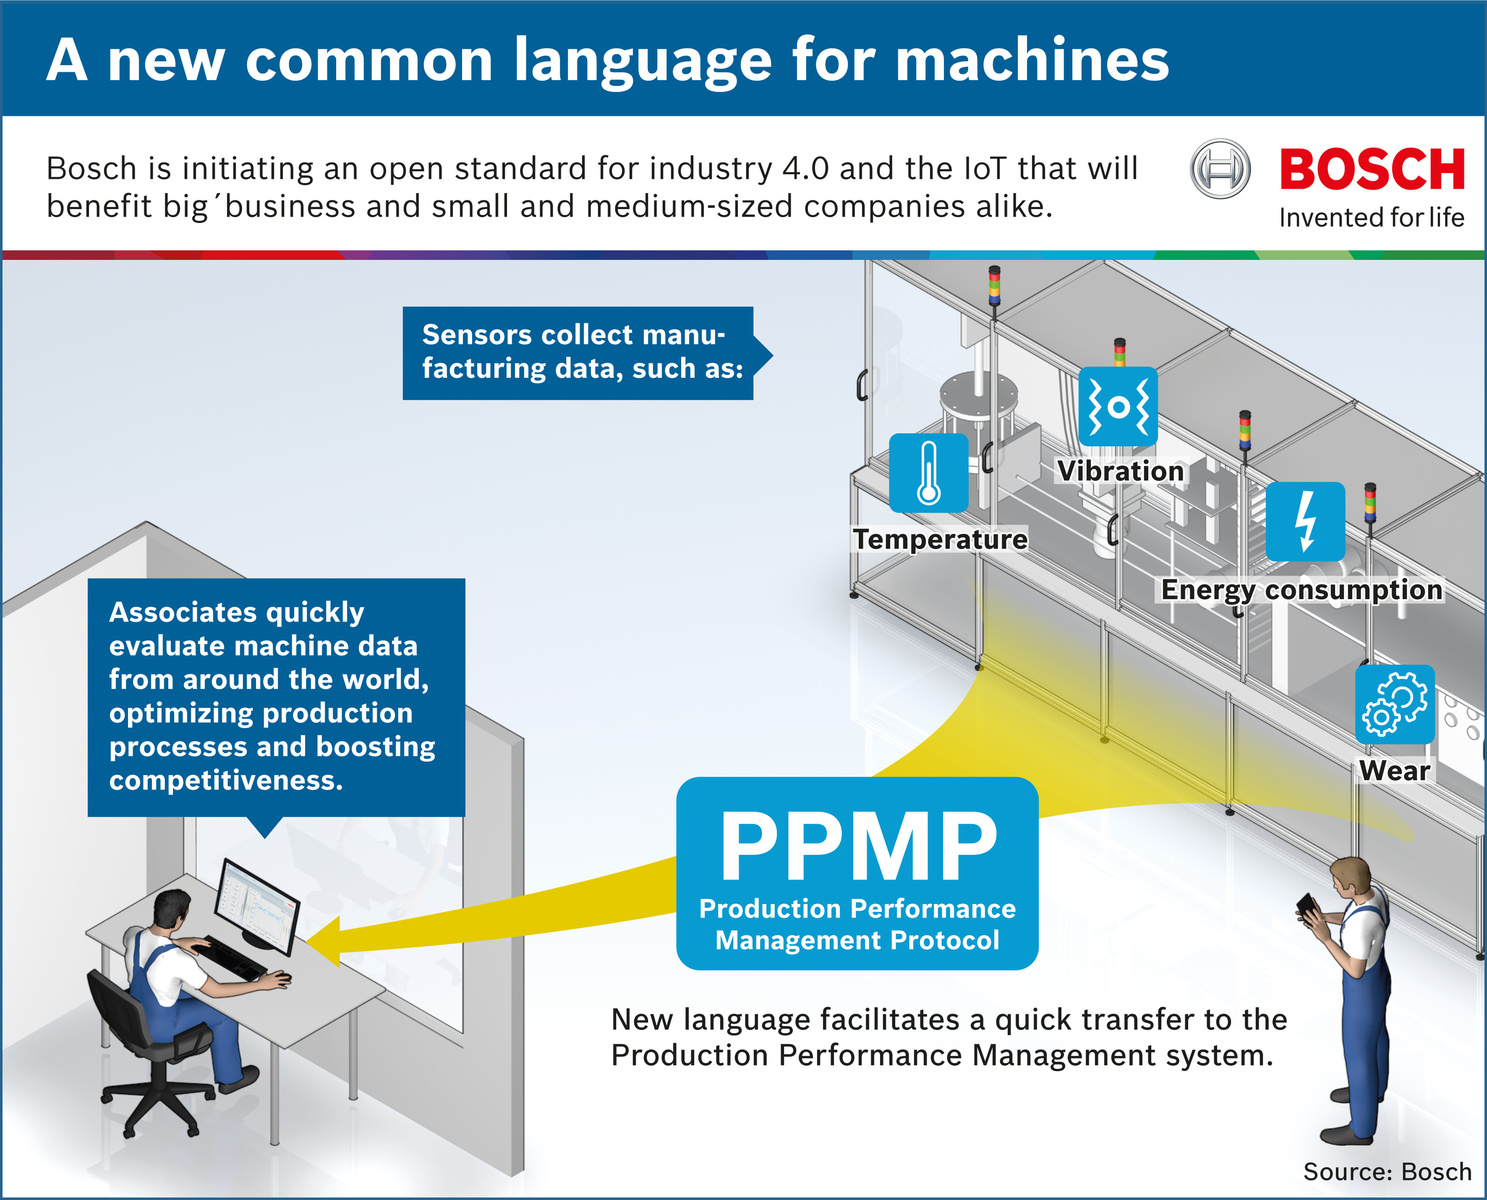 PPMP: A new common language for machines